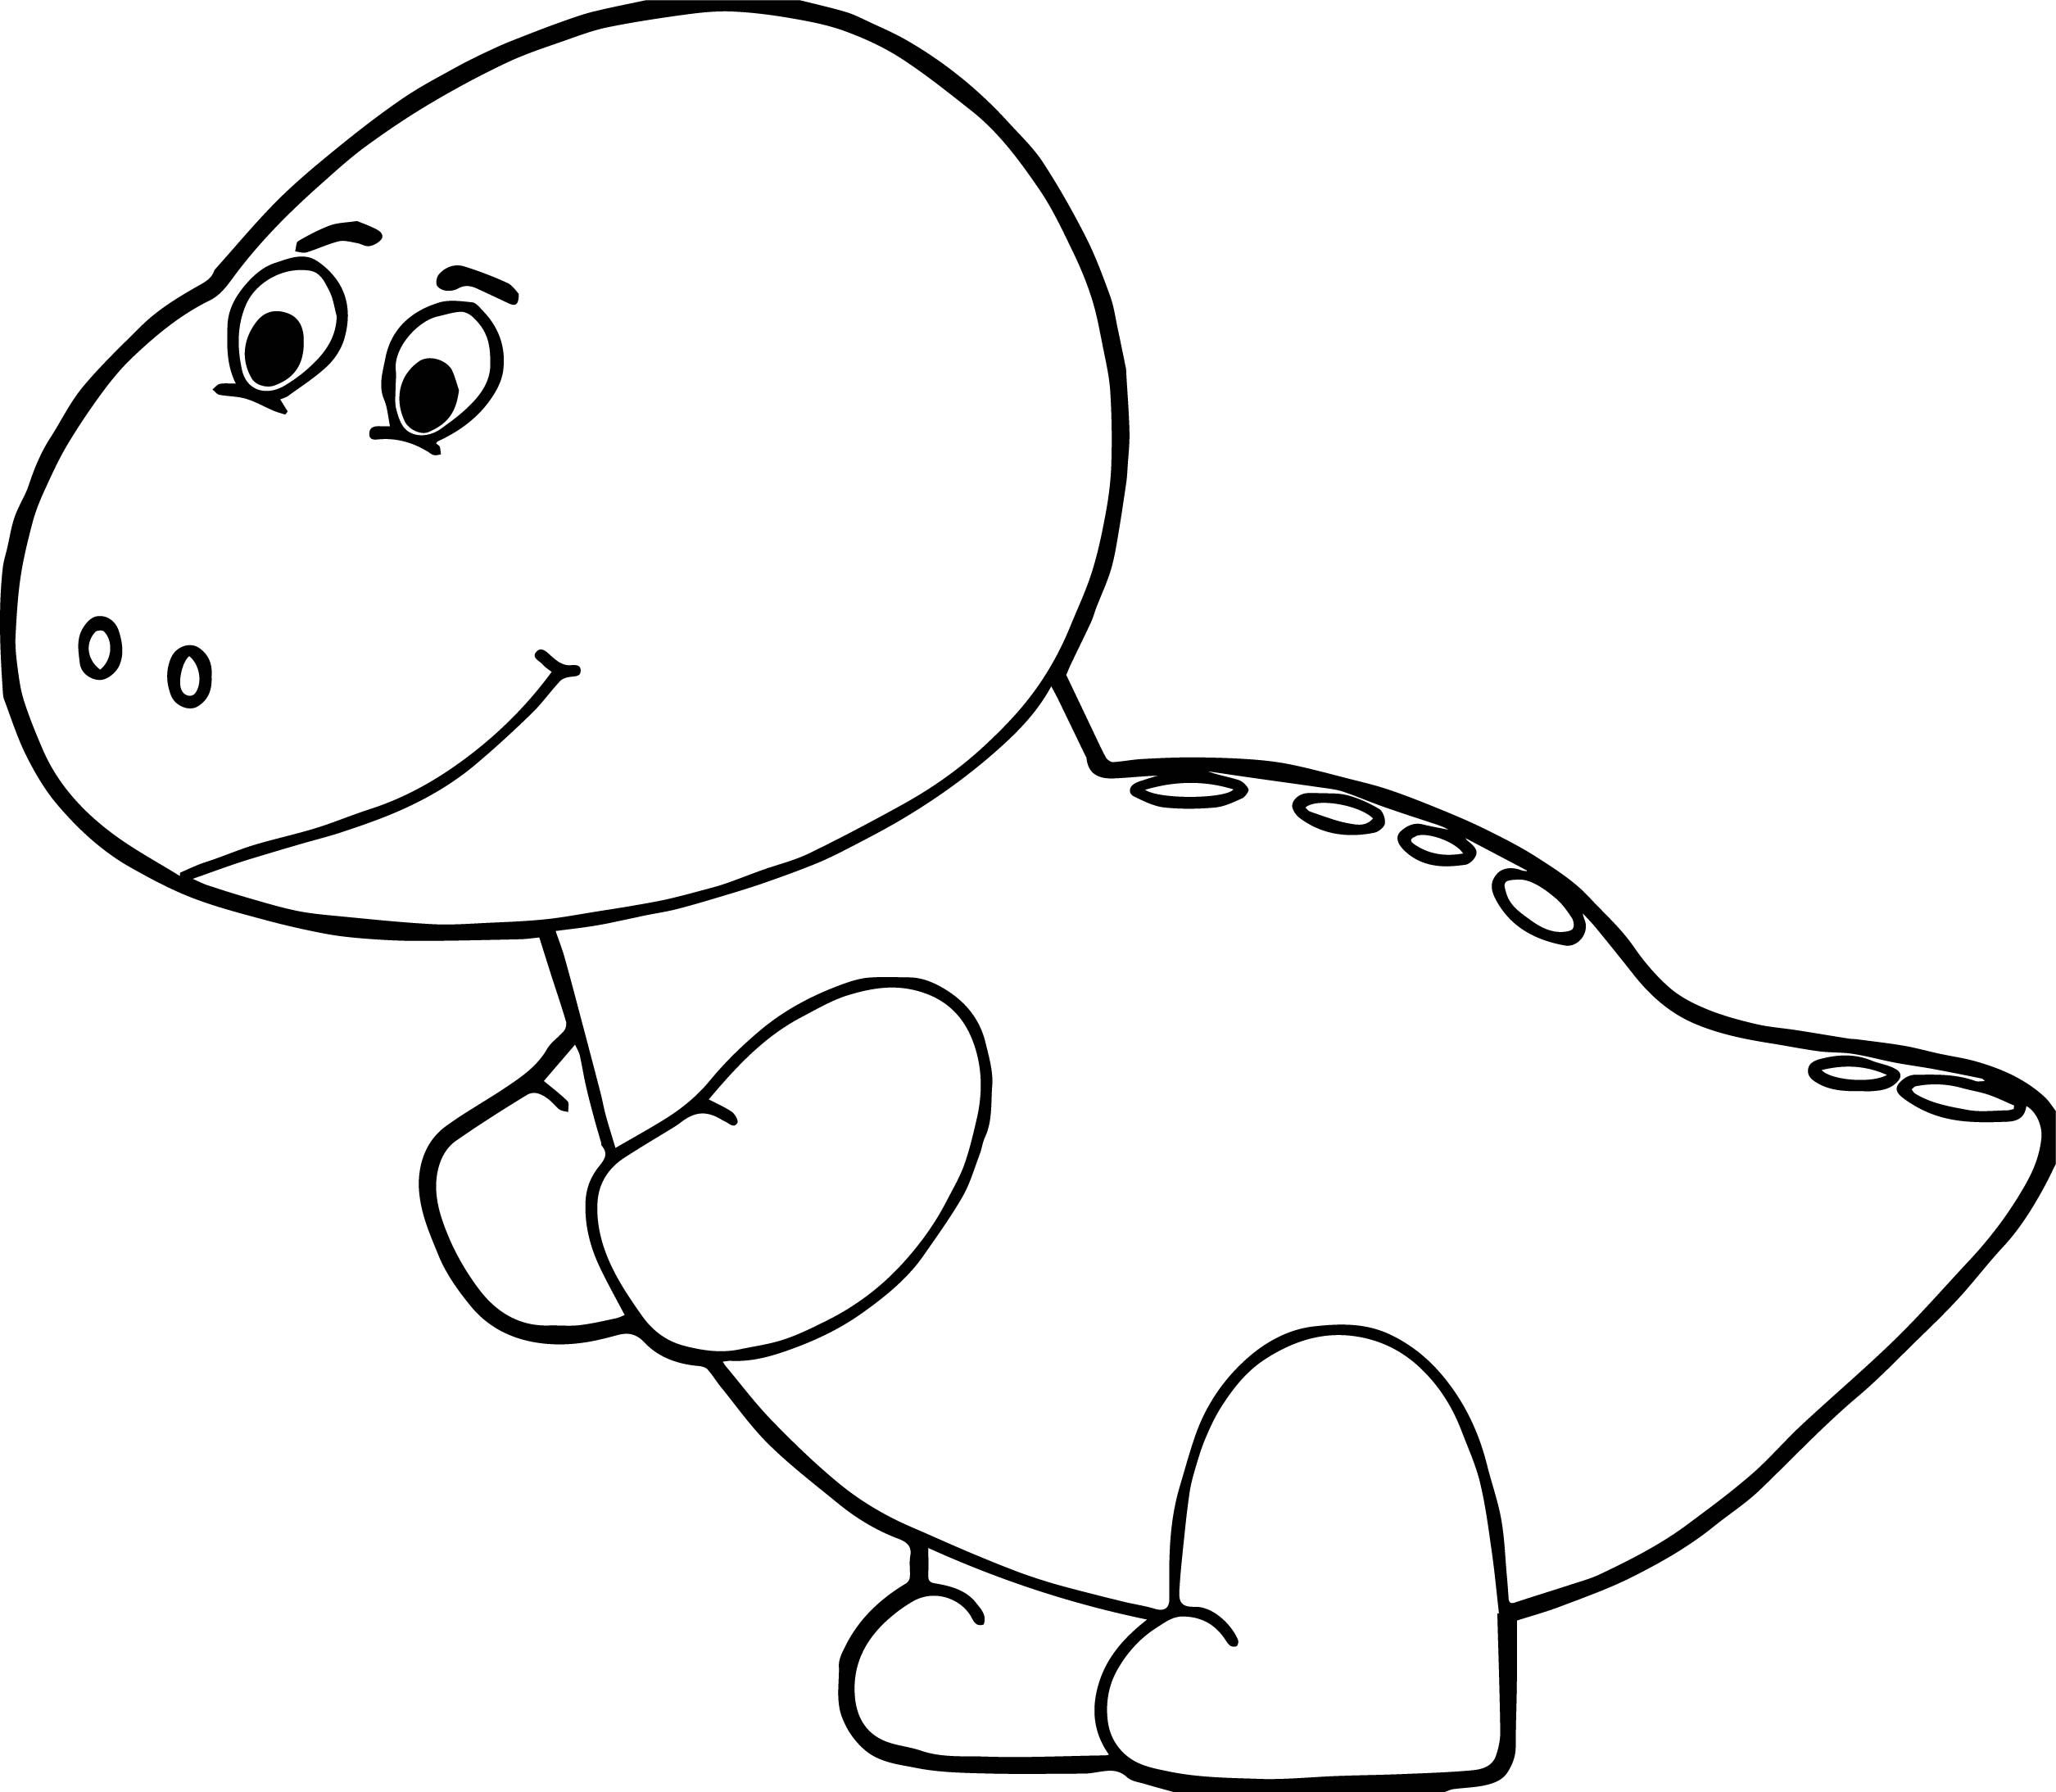 Awesome Baby Dinosaur Egg Head Coloring Page Dinosaur Coloring